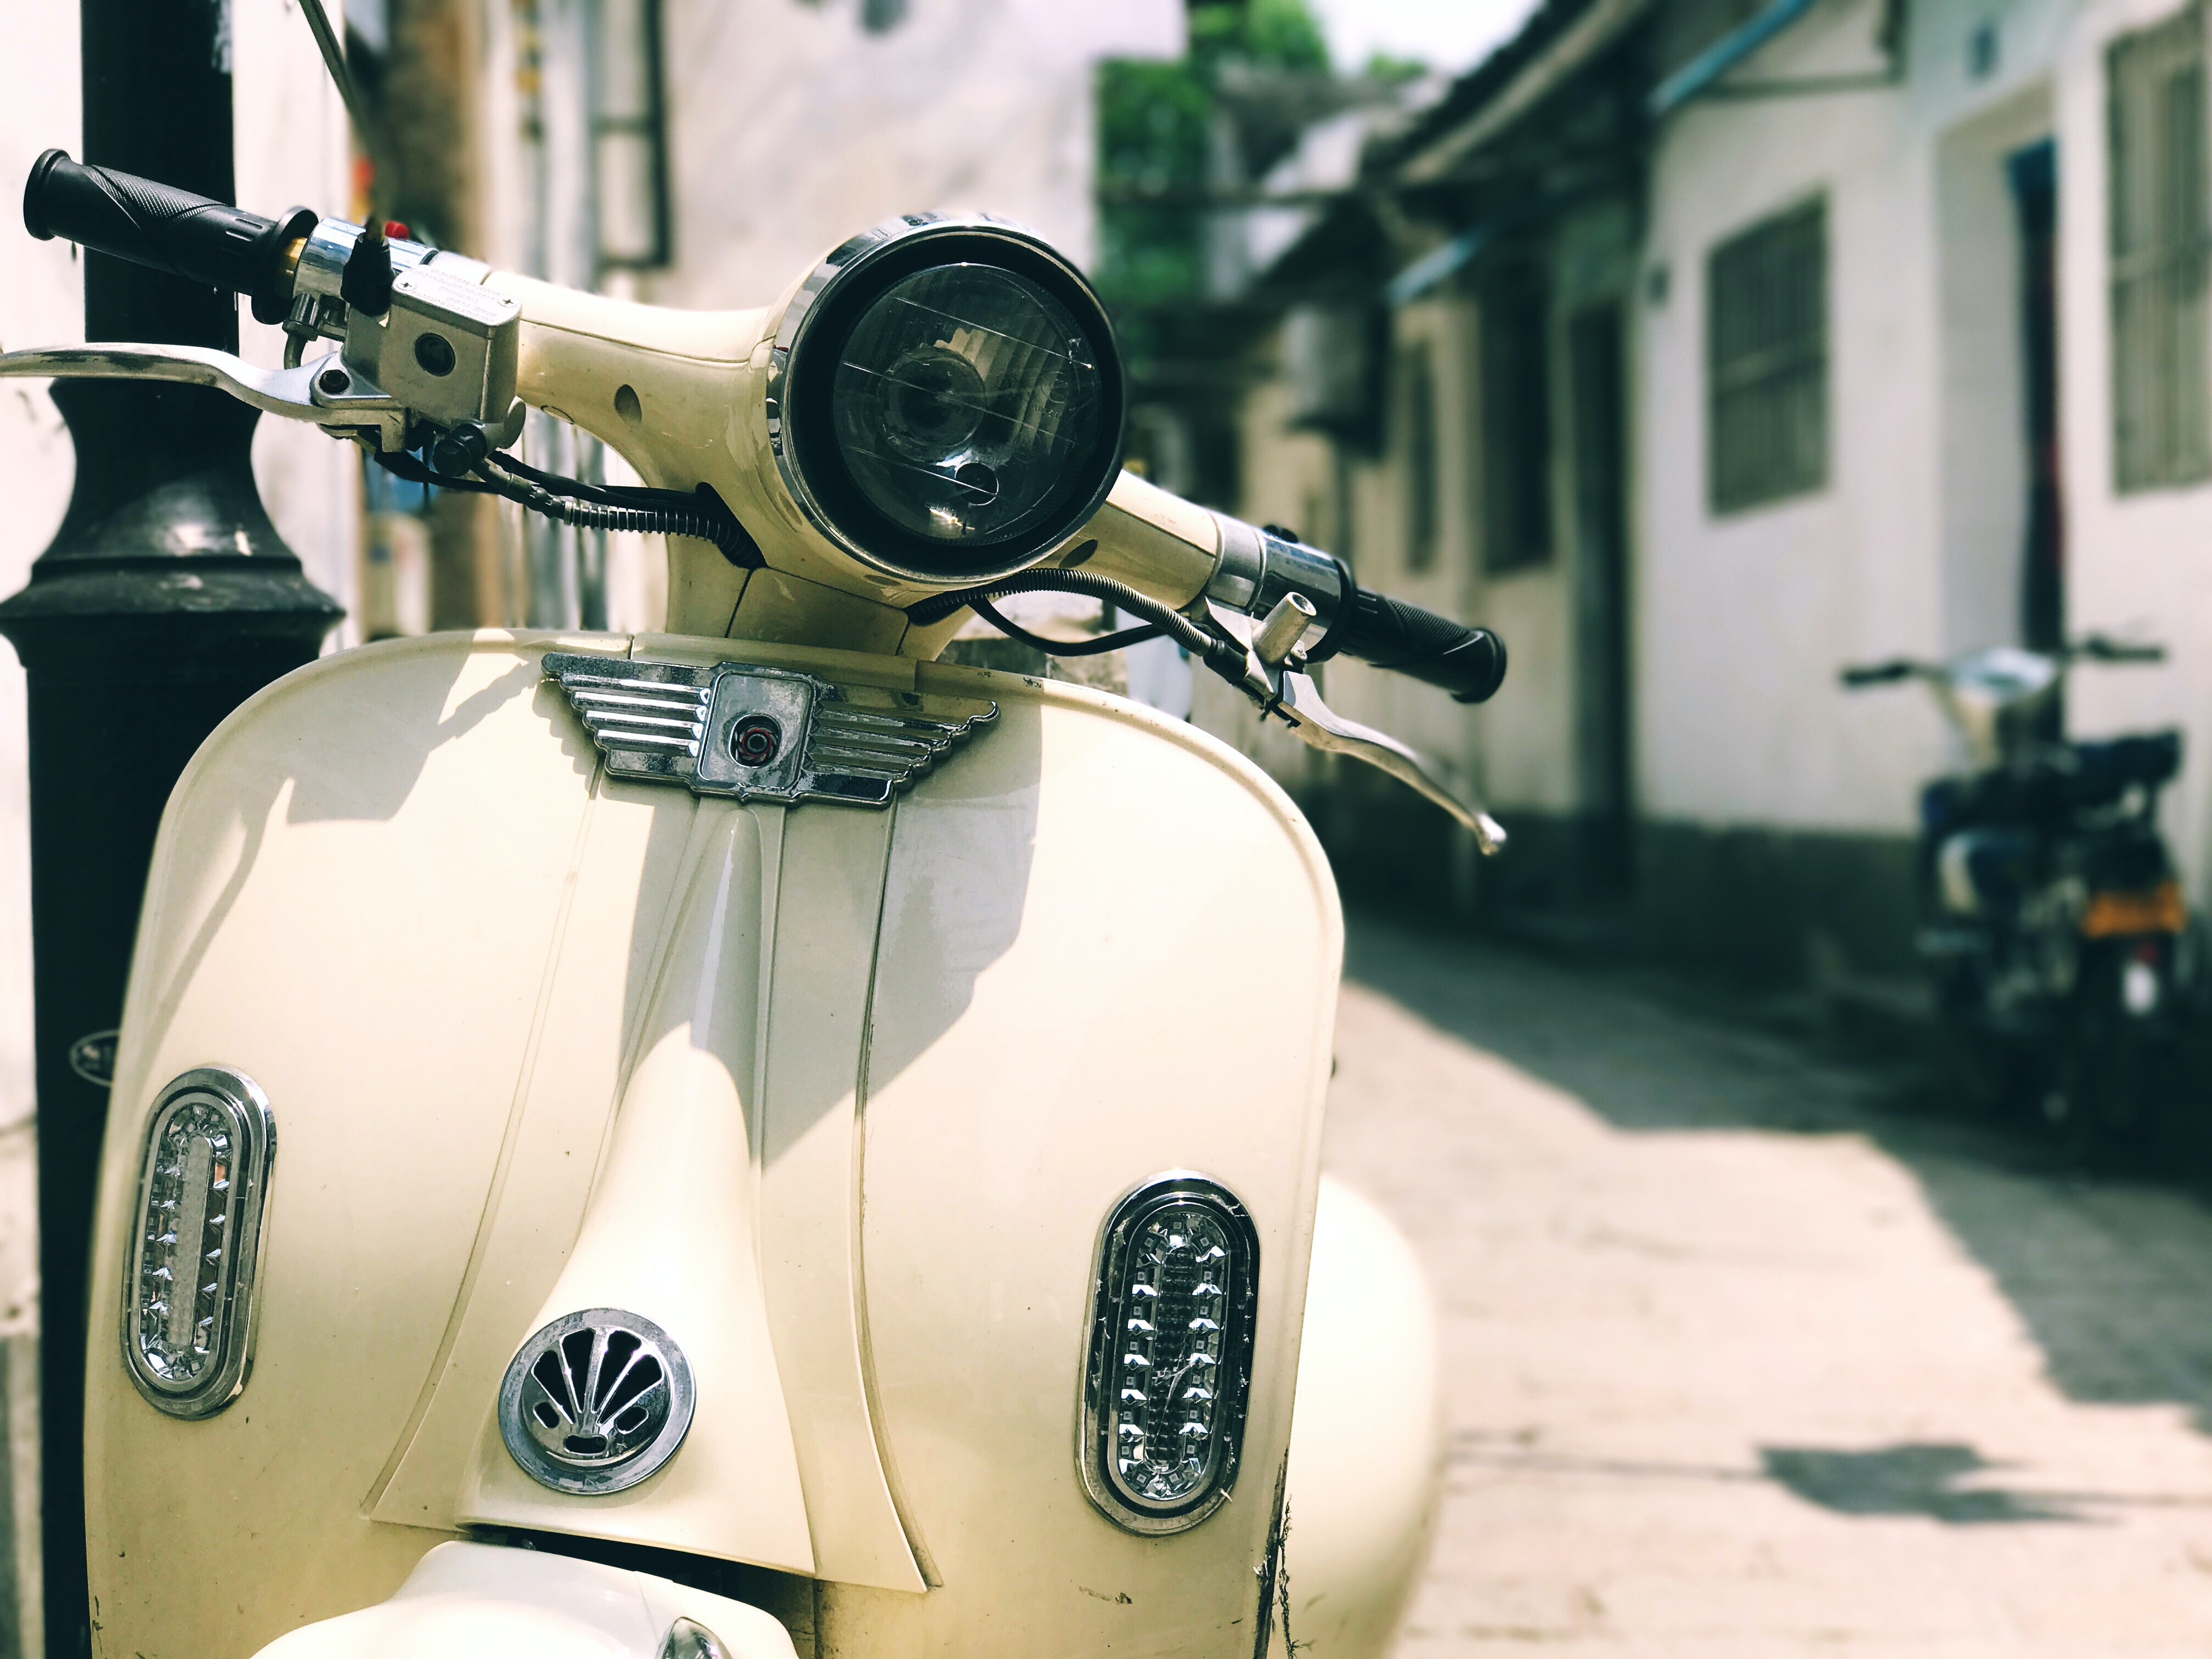 A white vintage scooter in a rural alley